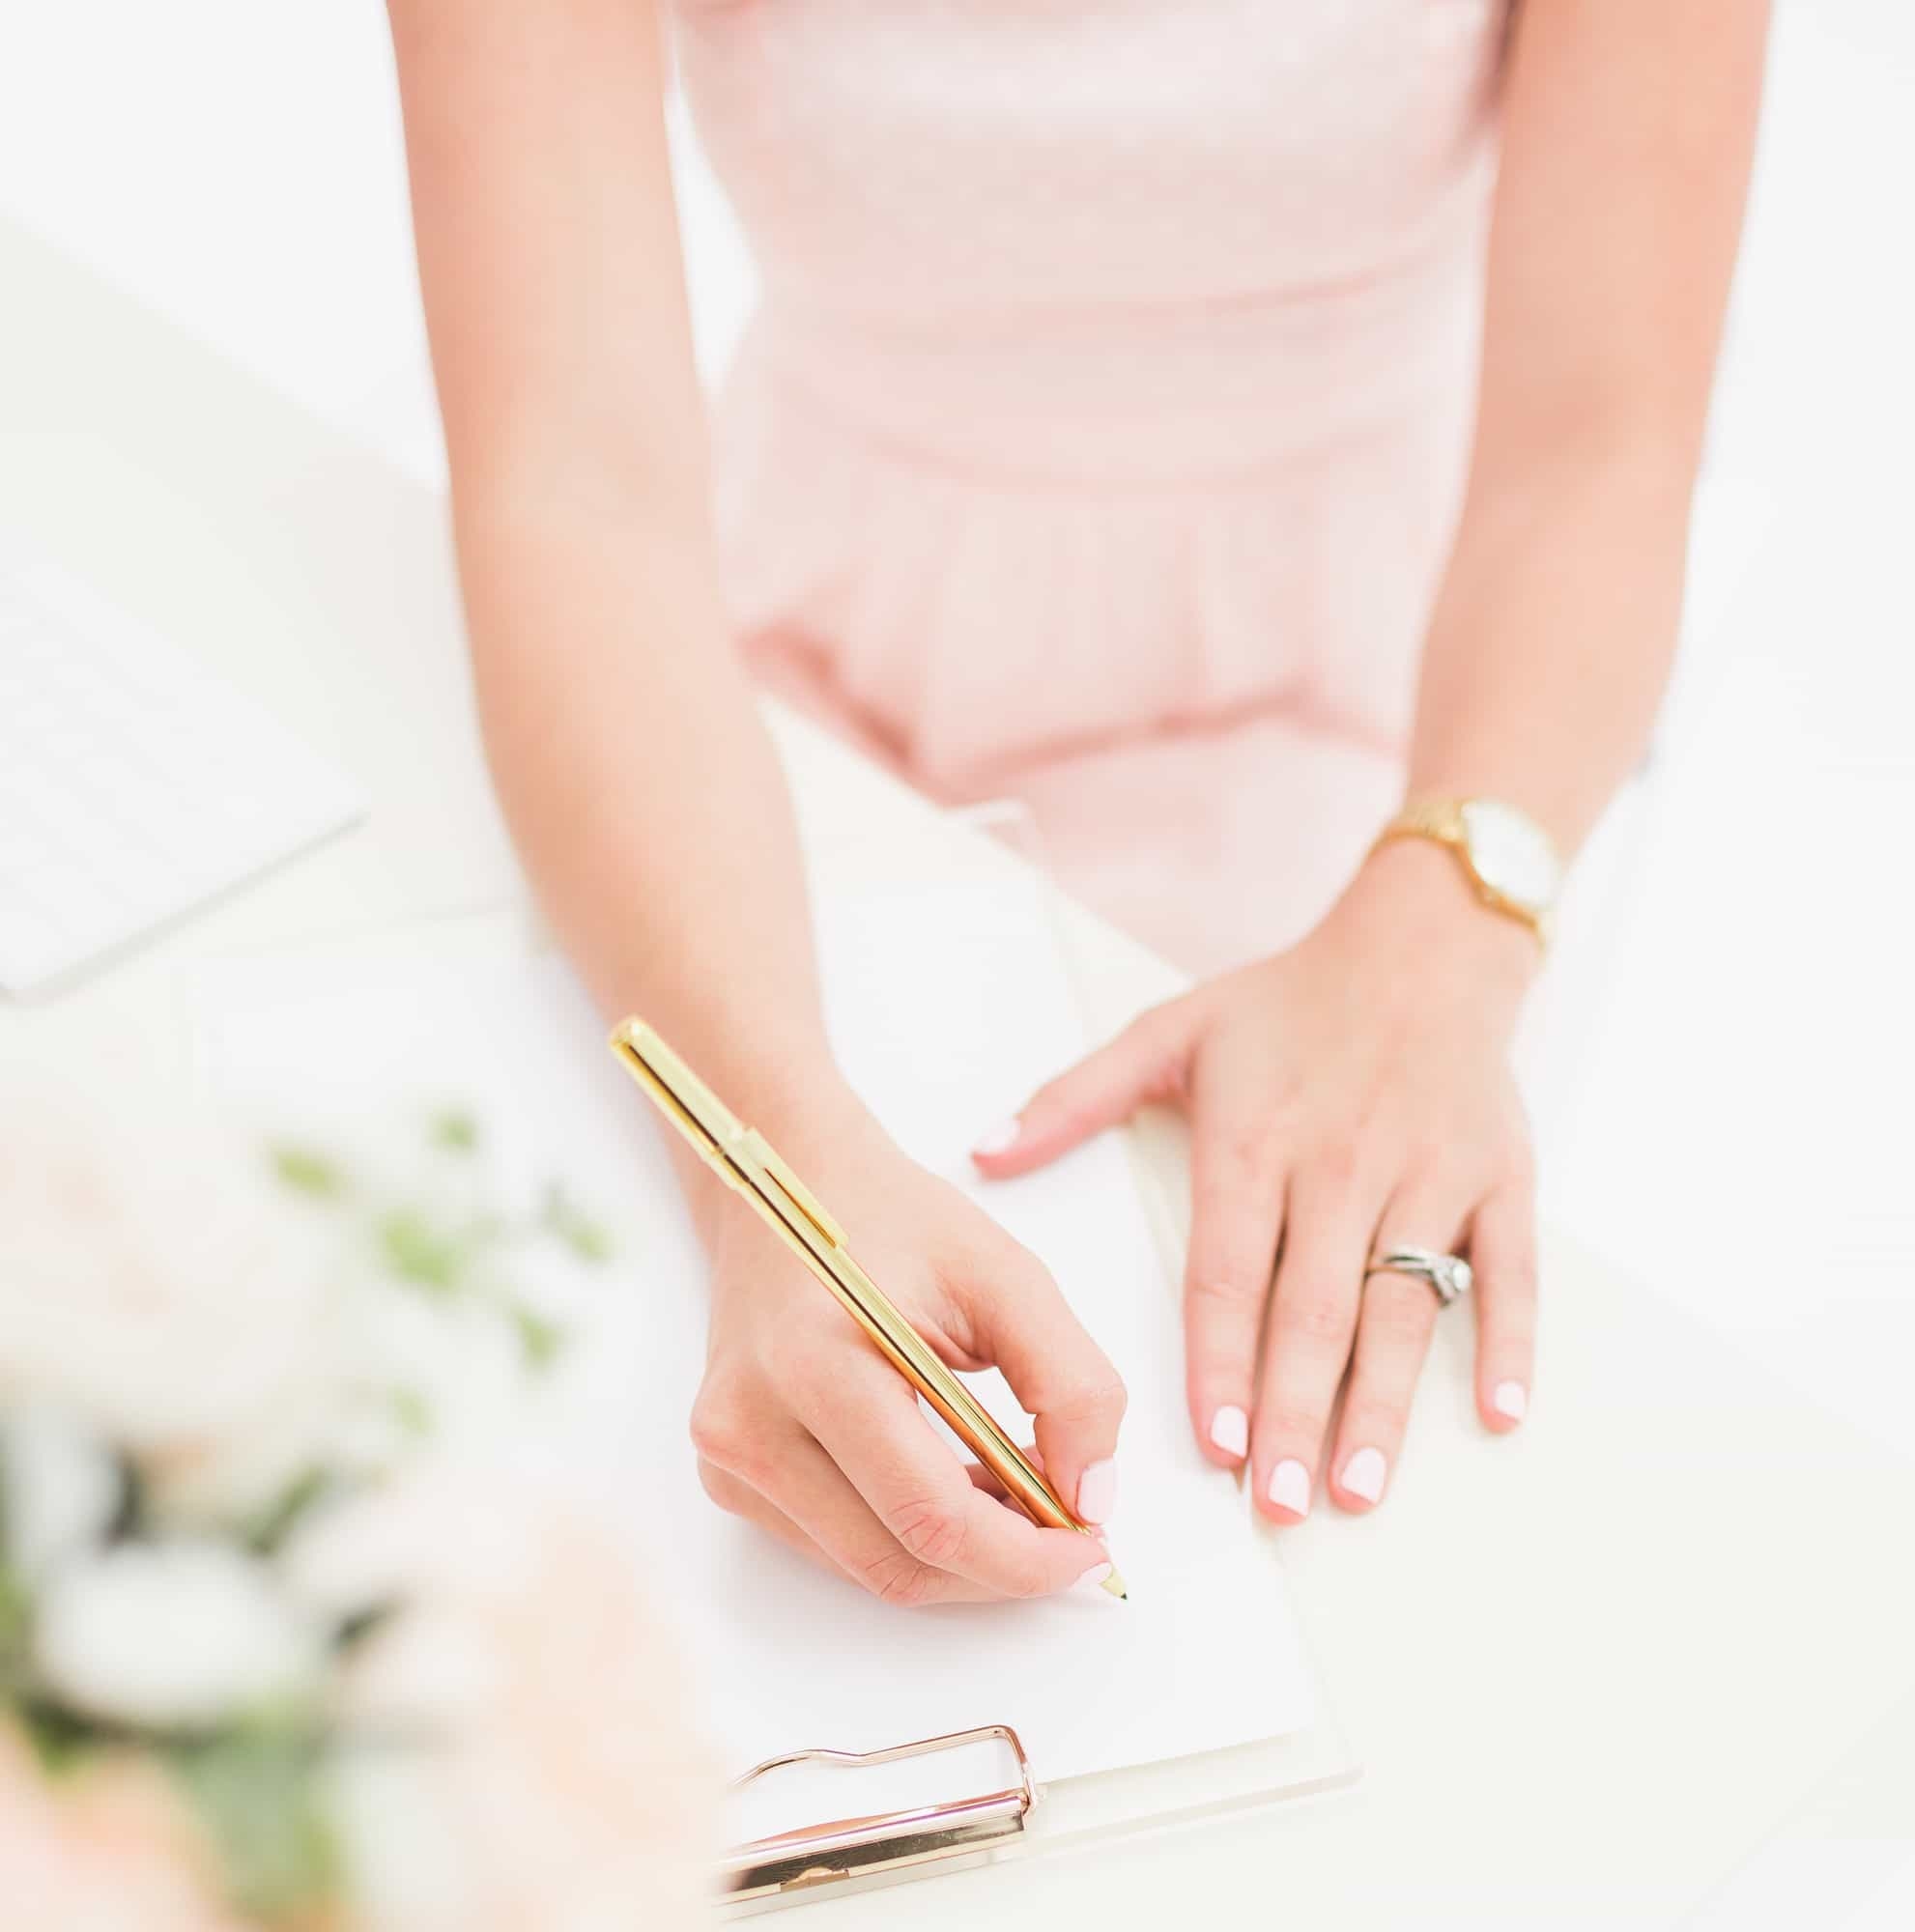 SC Lifestyle Blush Hands Writing Pink Dress